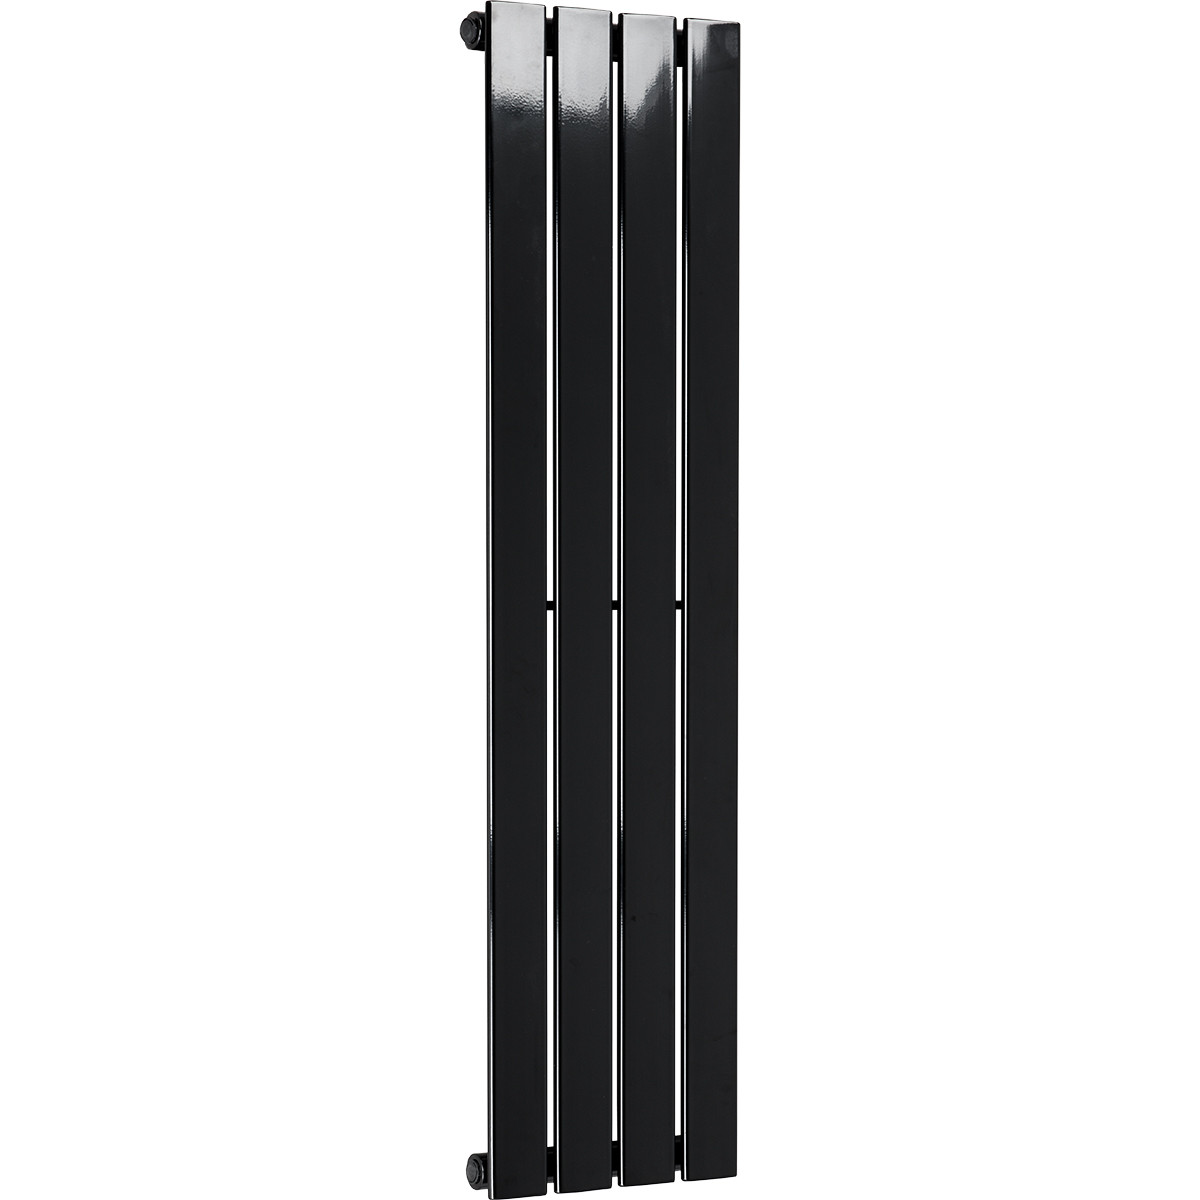 Hudson 1200 x 300 Single Panel Black Radiator